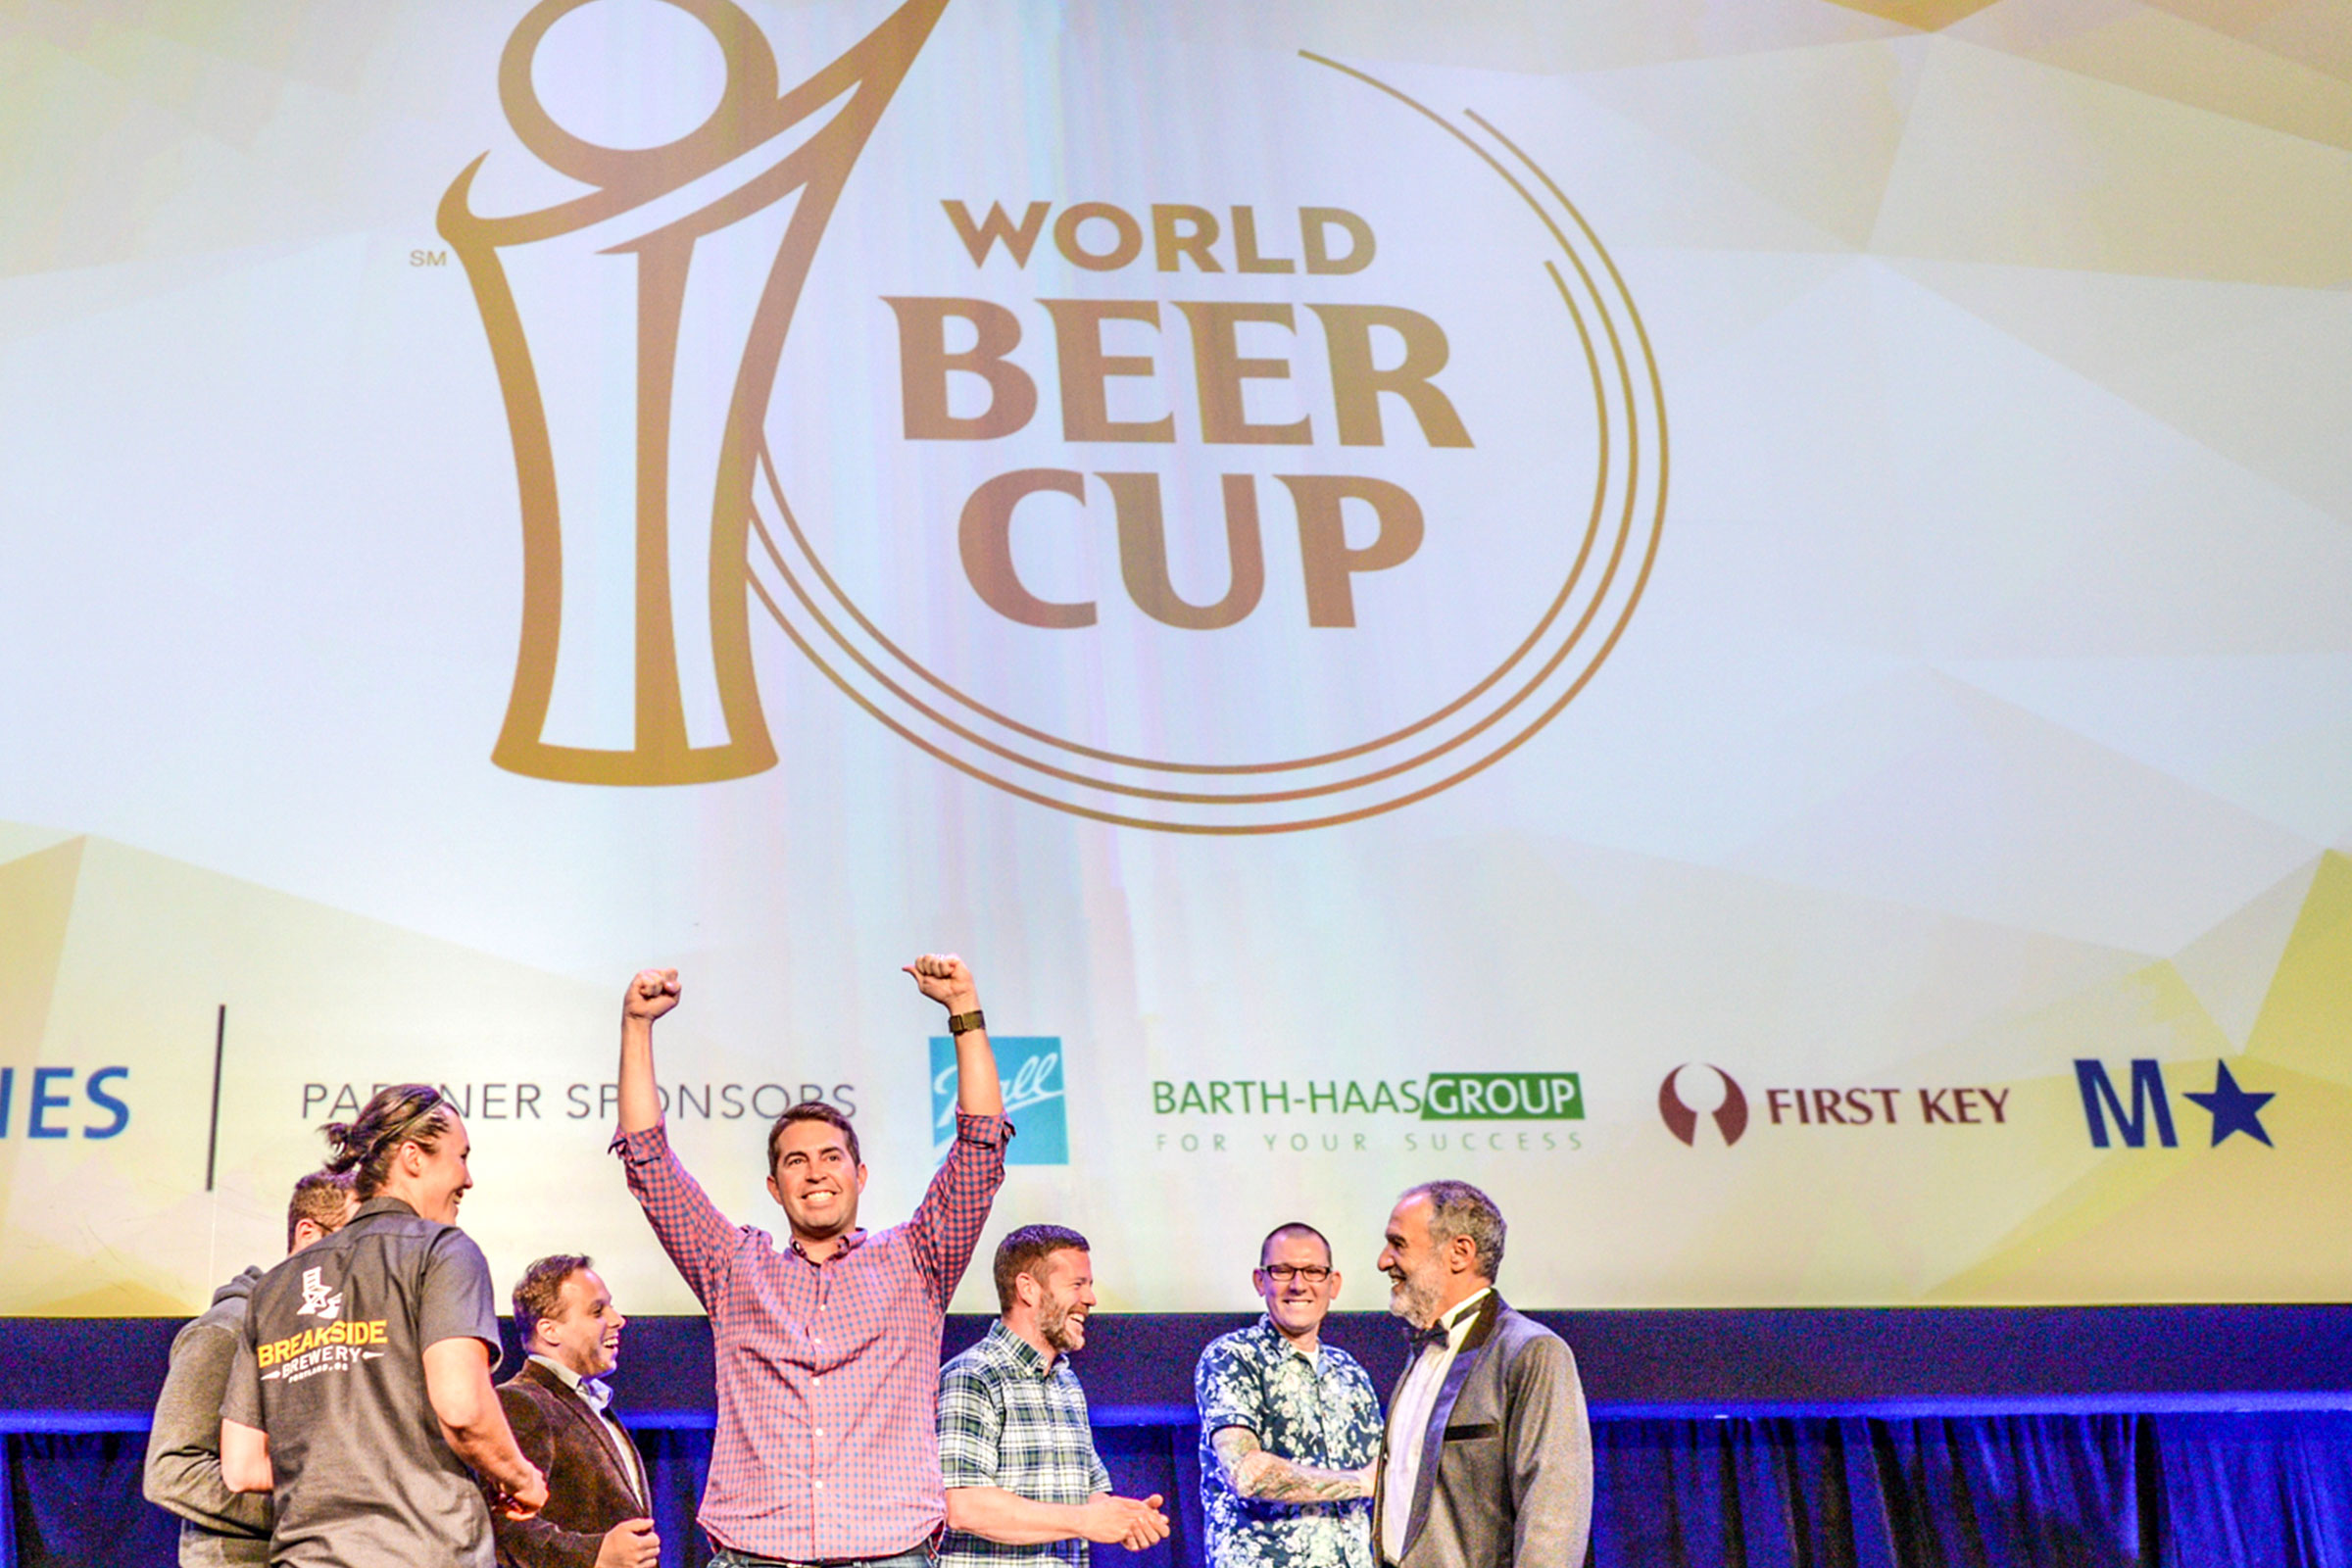 Breakside Brewery Winning one of four medals at the 2016 World Beer Cup. (Photos © Brewers Association)